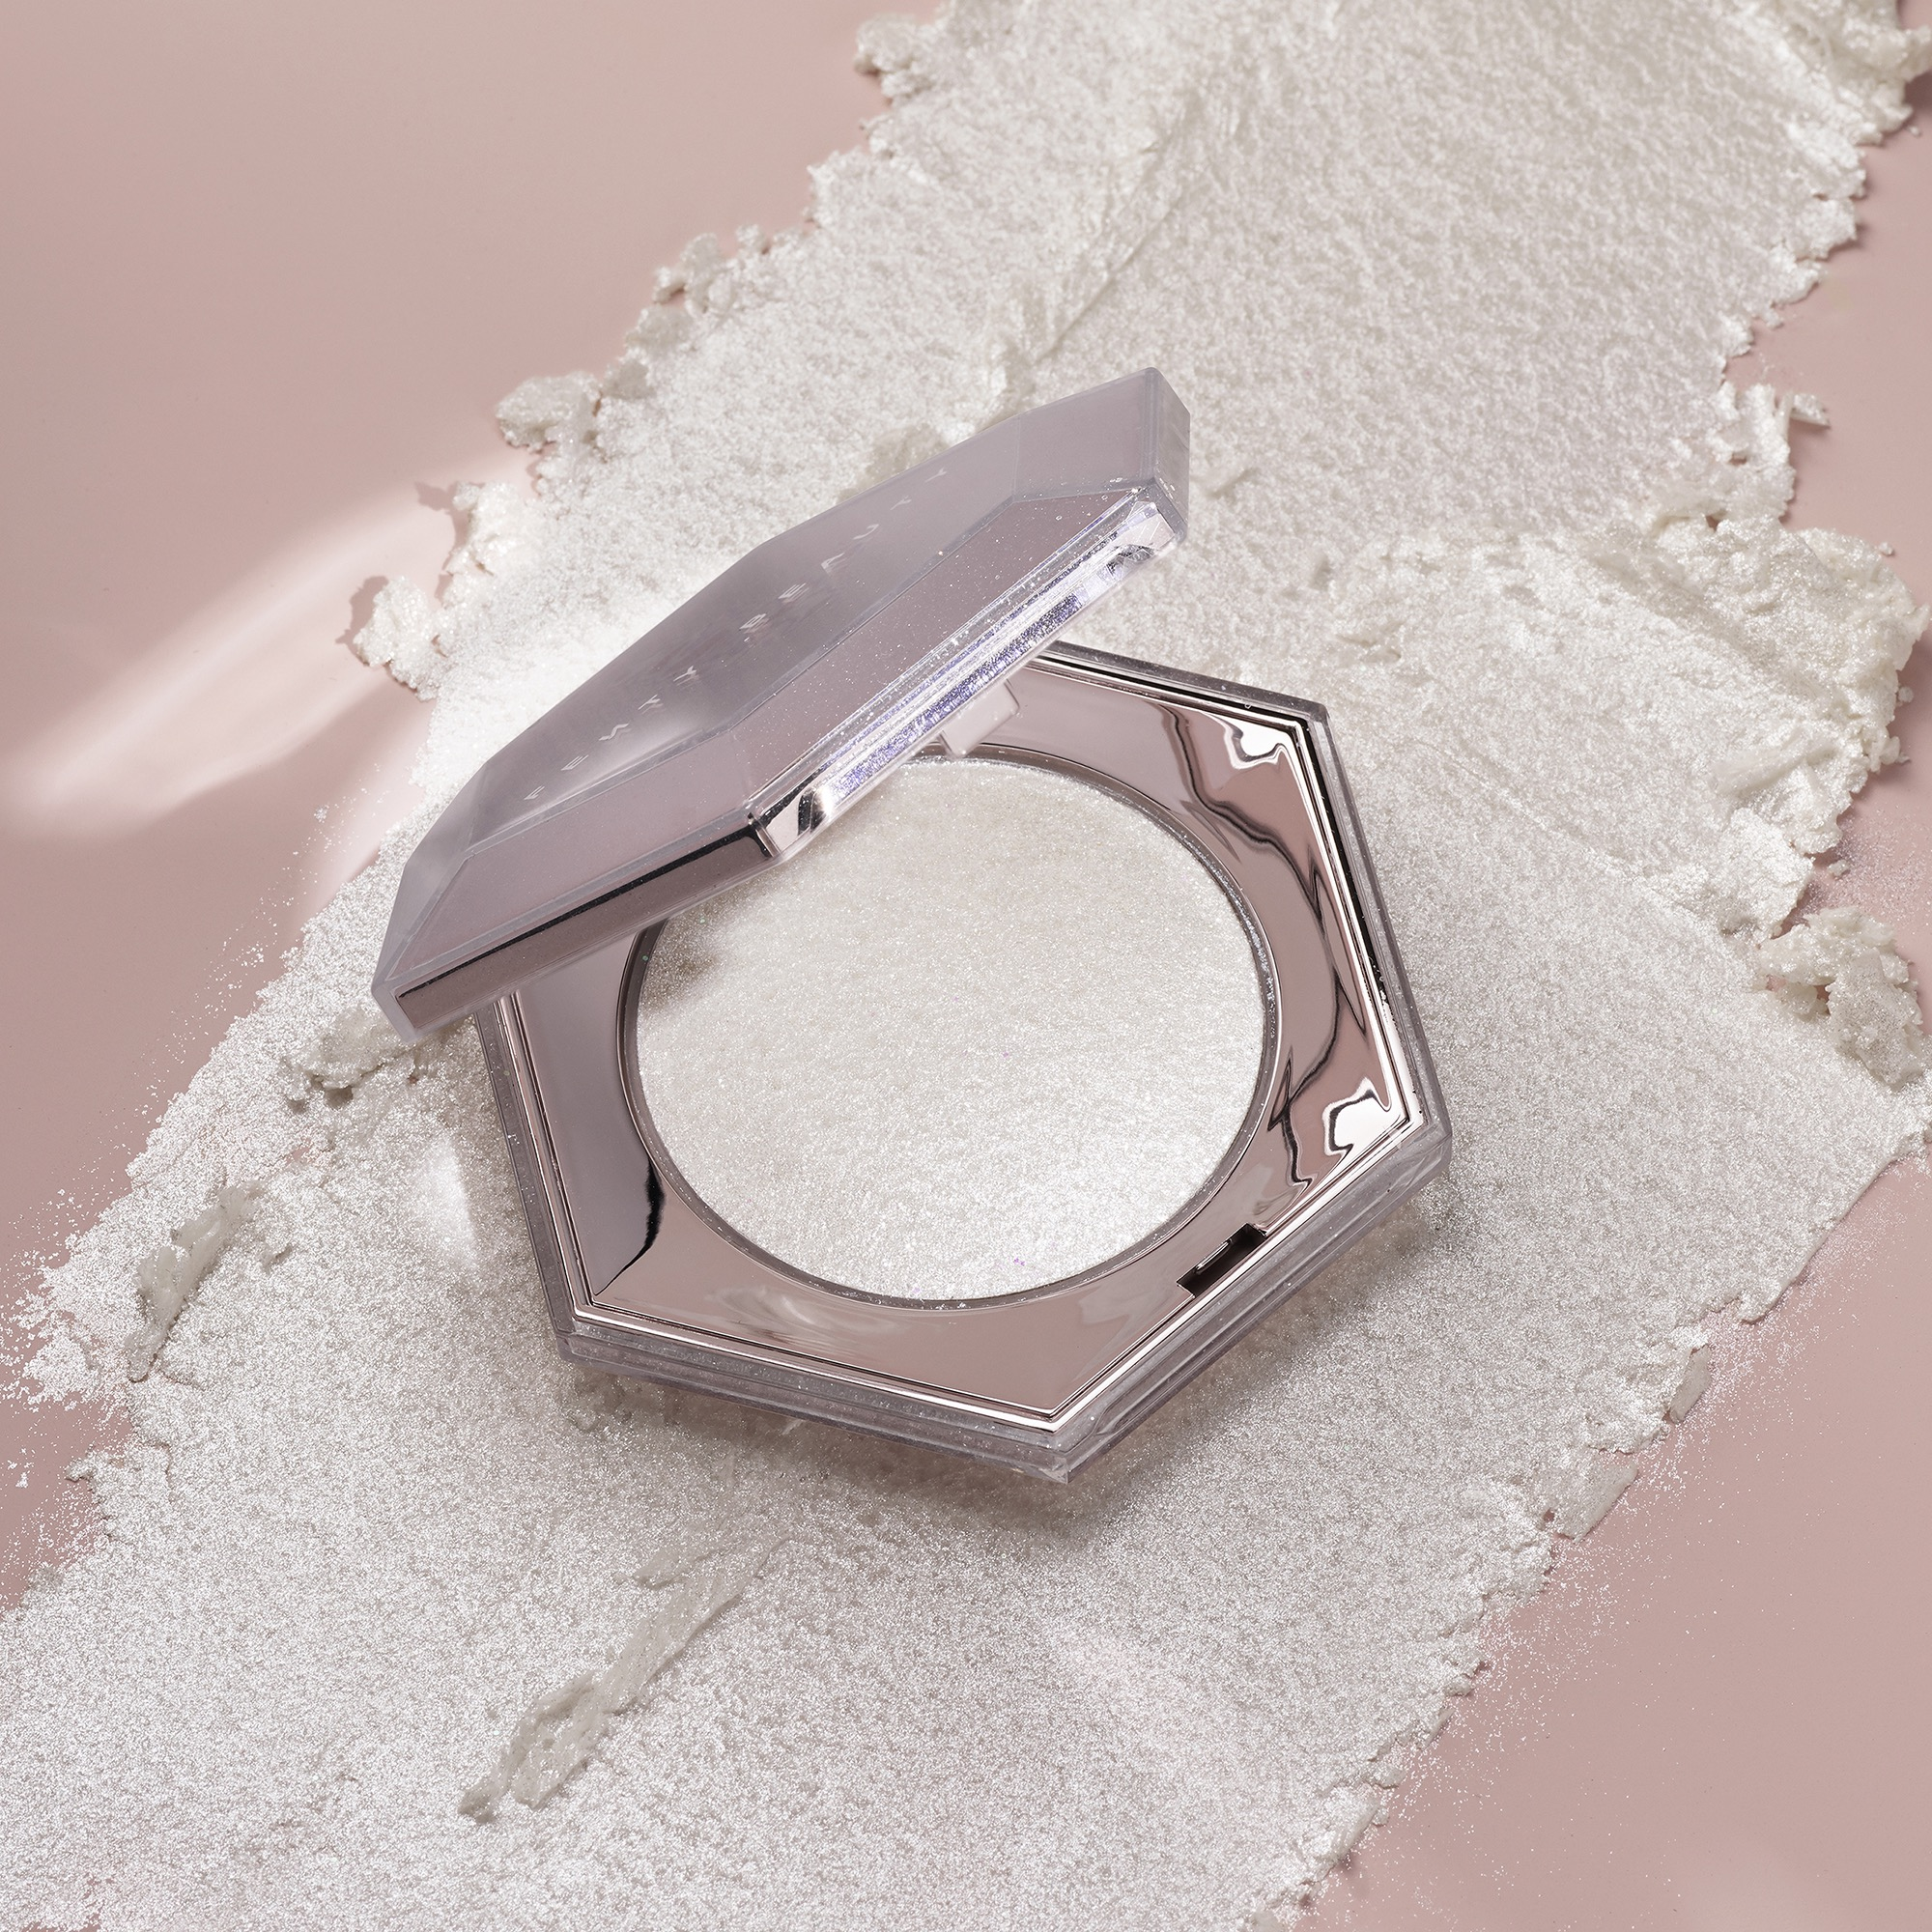 Fenty Beauty by Rihanna Novita Autunno 2018 - Info, prezzo, recensione, swatch - Gloss Bomb Universal Lip Luminizer Diamond Milk e Diamond Bomb All-Over Diamond Veil